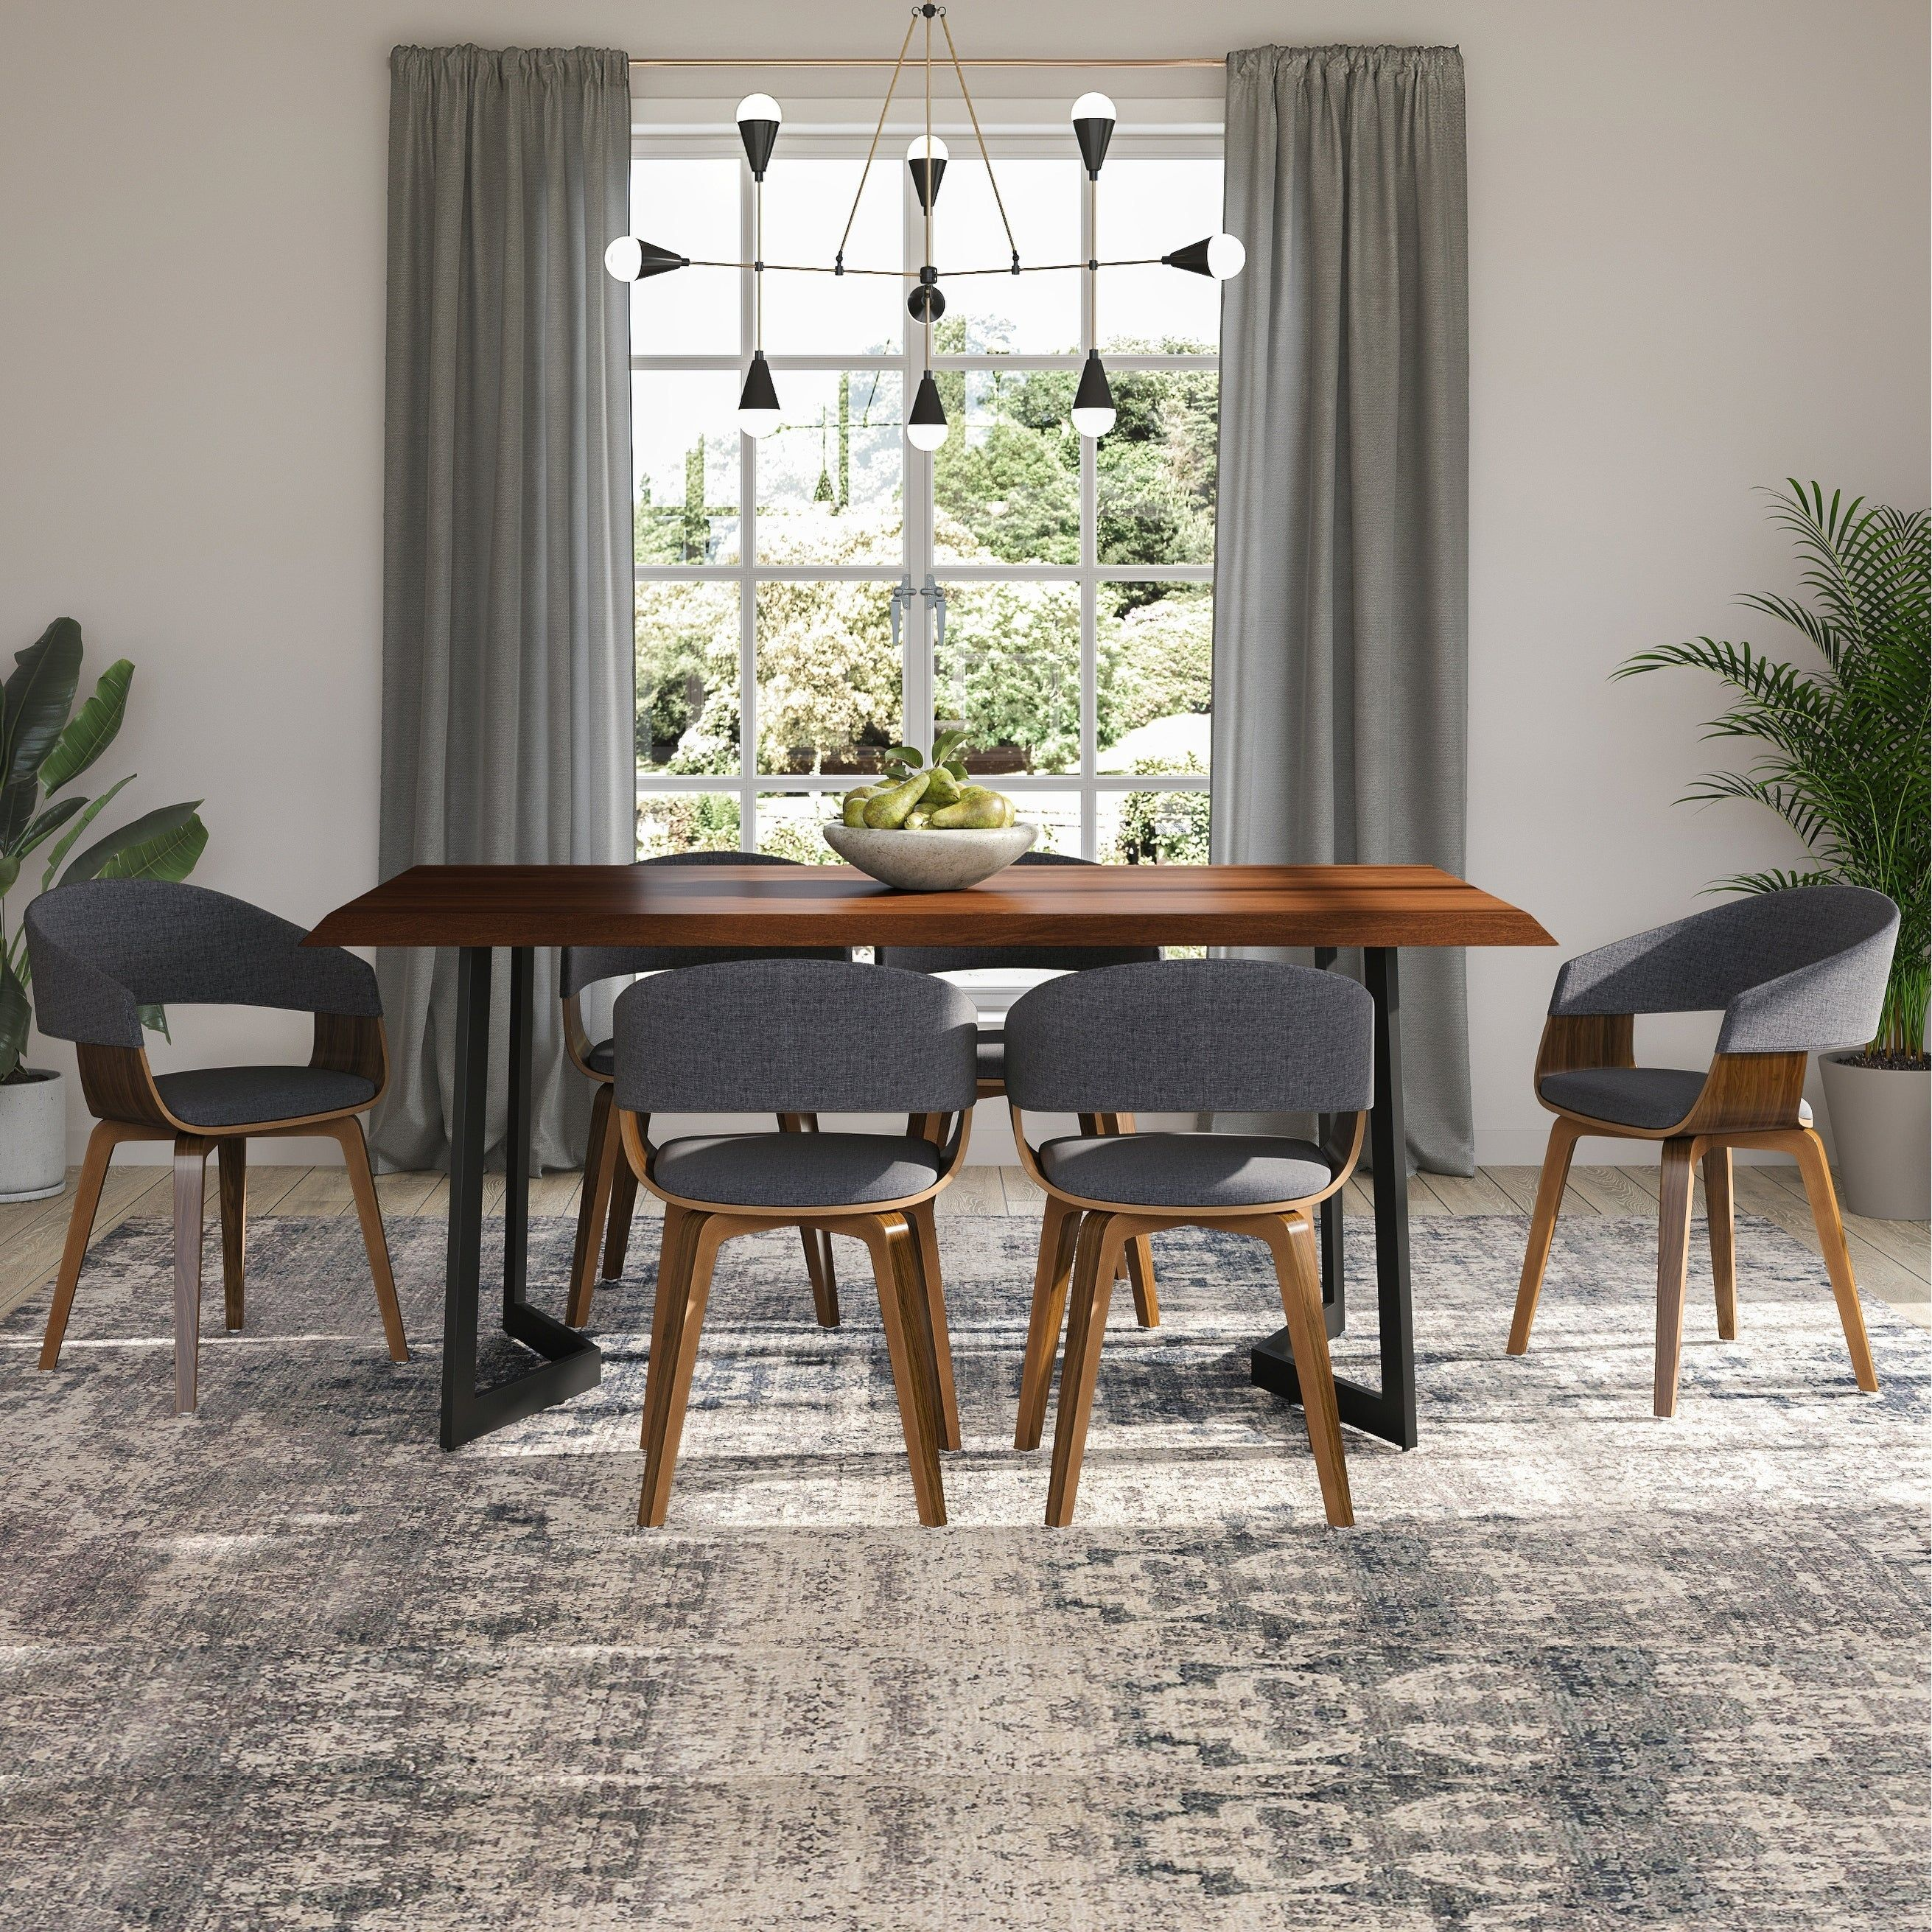 Wyndenhall Hathaway Solid Mango Wood Dining Table With Inverted Metal Base In Dark Brown 72 Inches Wide Mango Wood Dining Table Dining Table Metal Dining Table